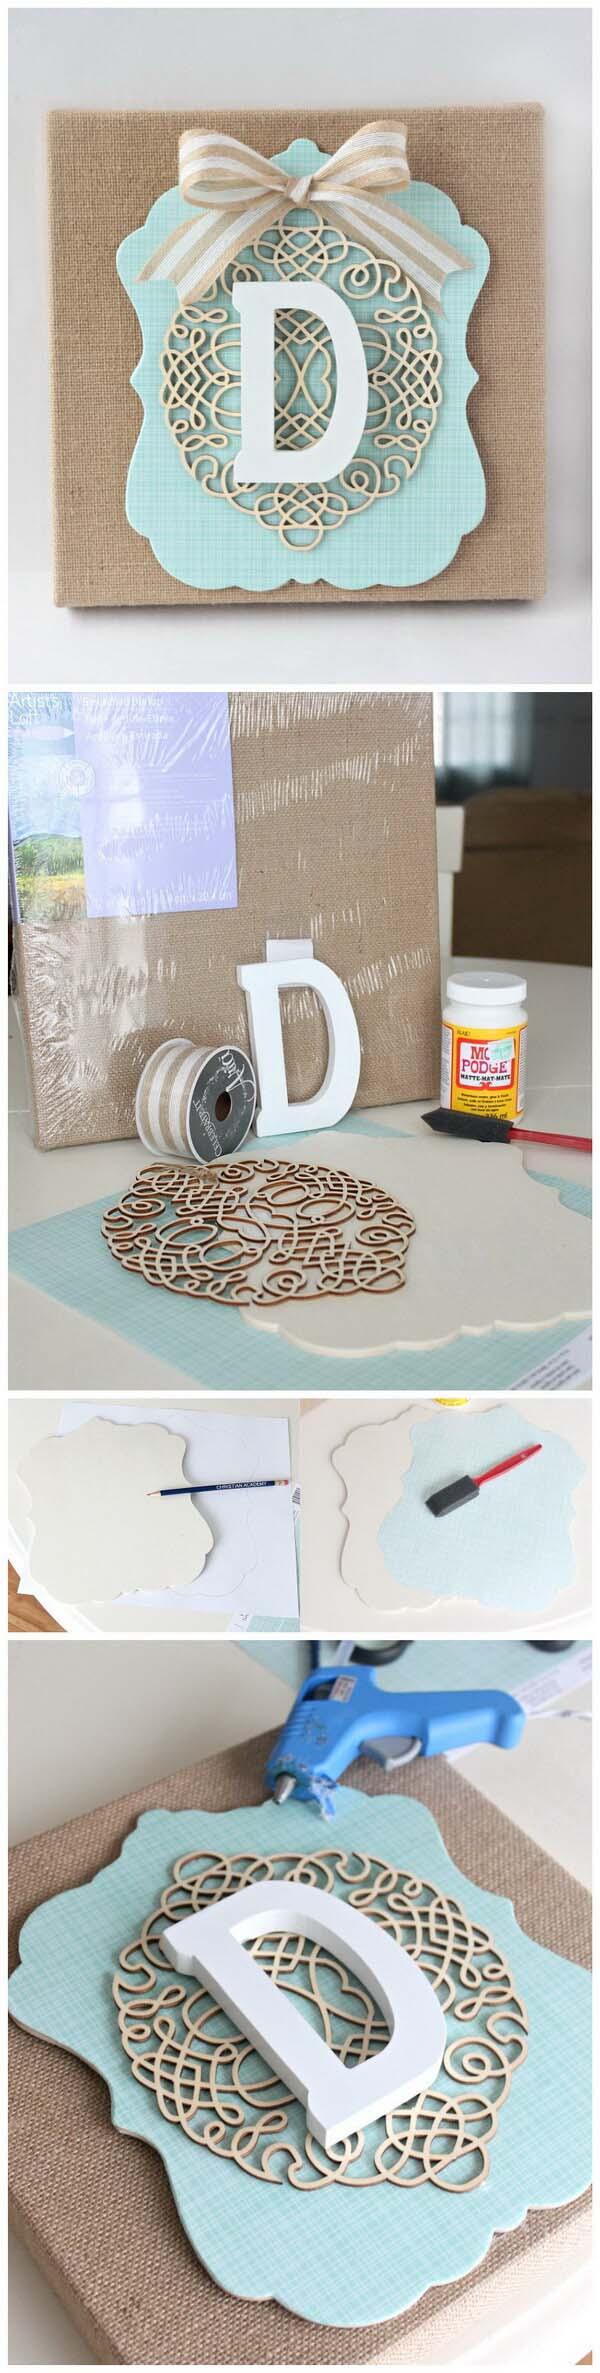 DIY Burlap Monogram #dollarstore #diy #homedecor #decorhomeideas